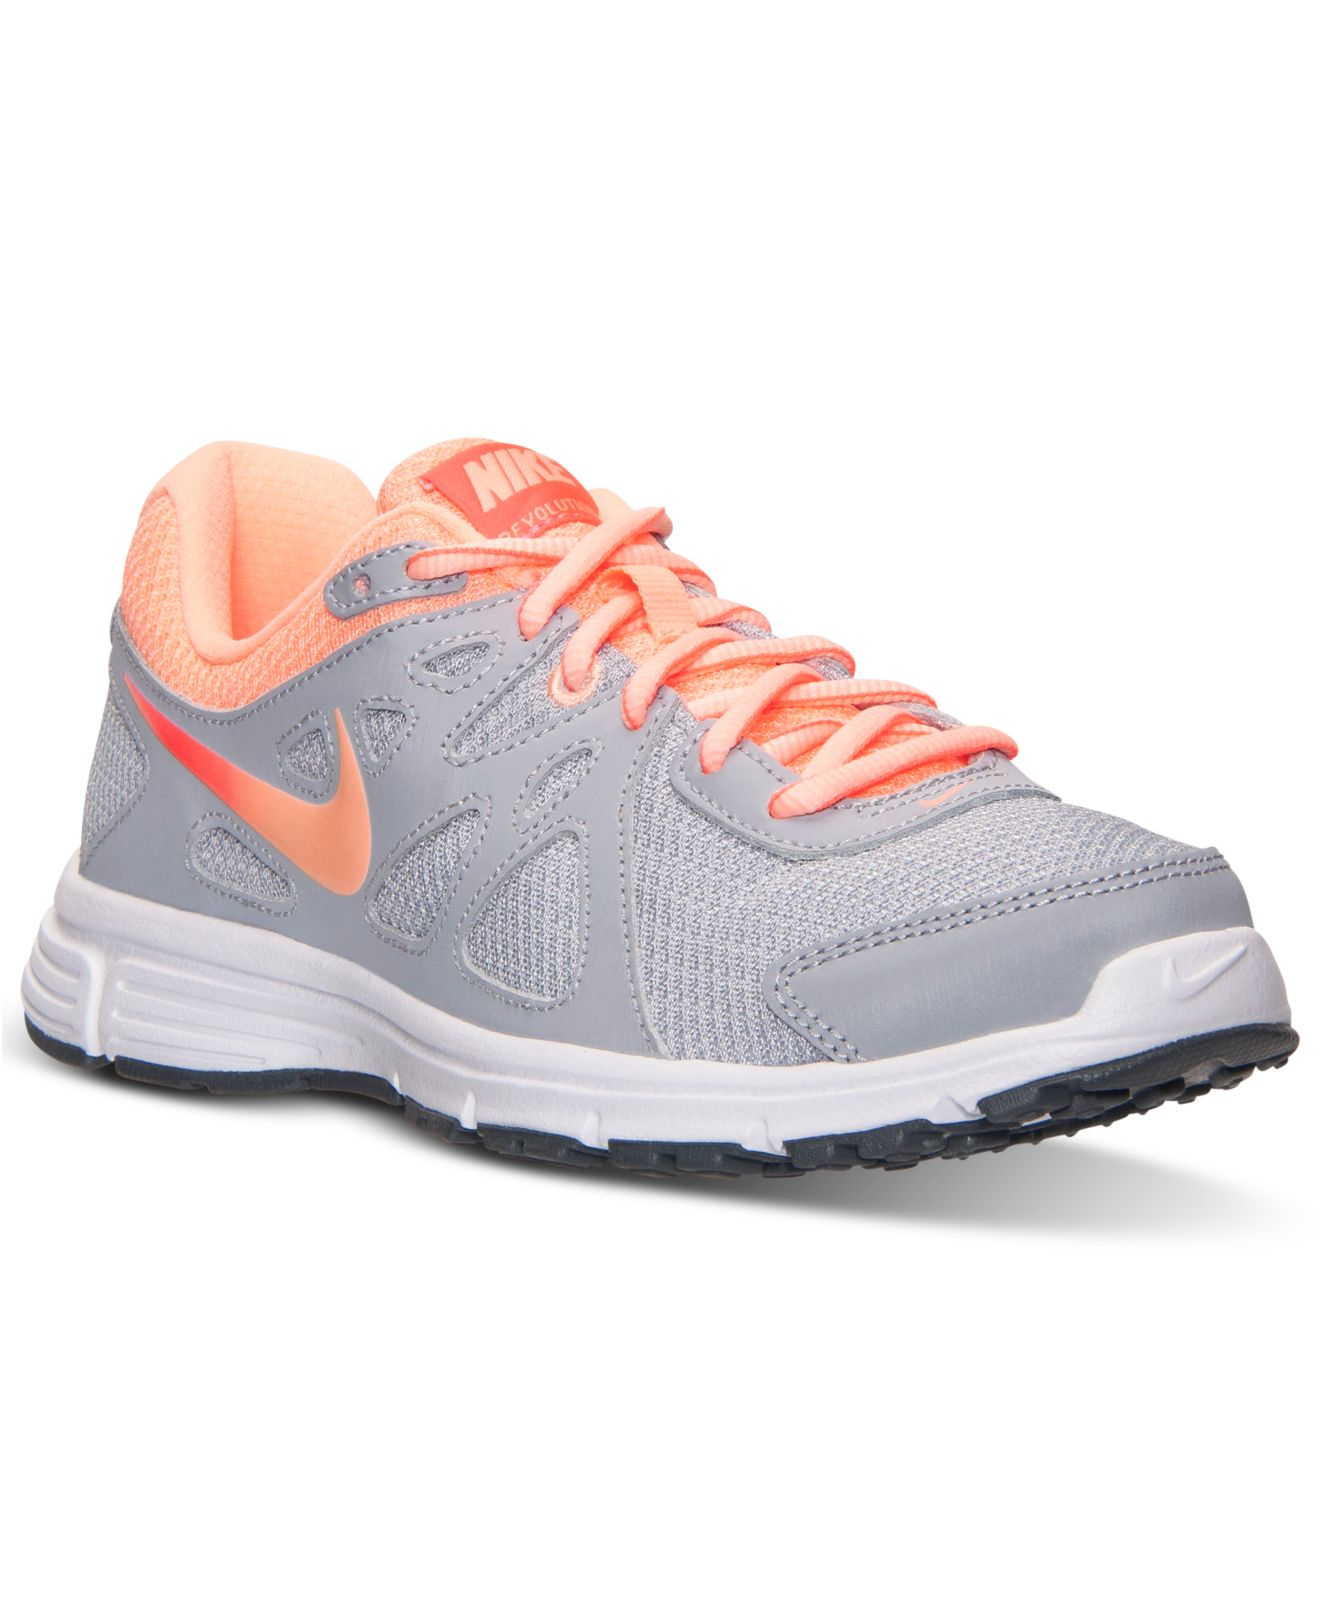 Lyst - Nike Women s Revolution 2 Running Sneakers From Finish Line ... 9a58a65d0